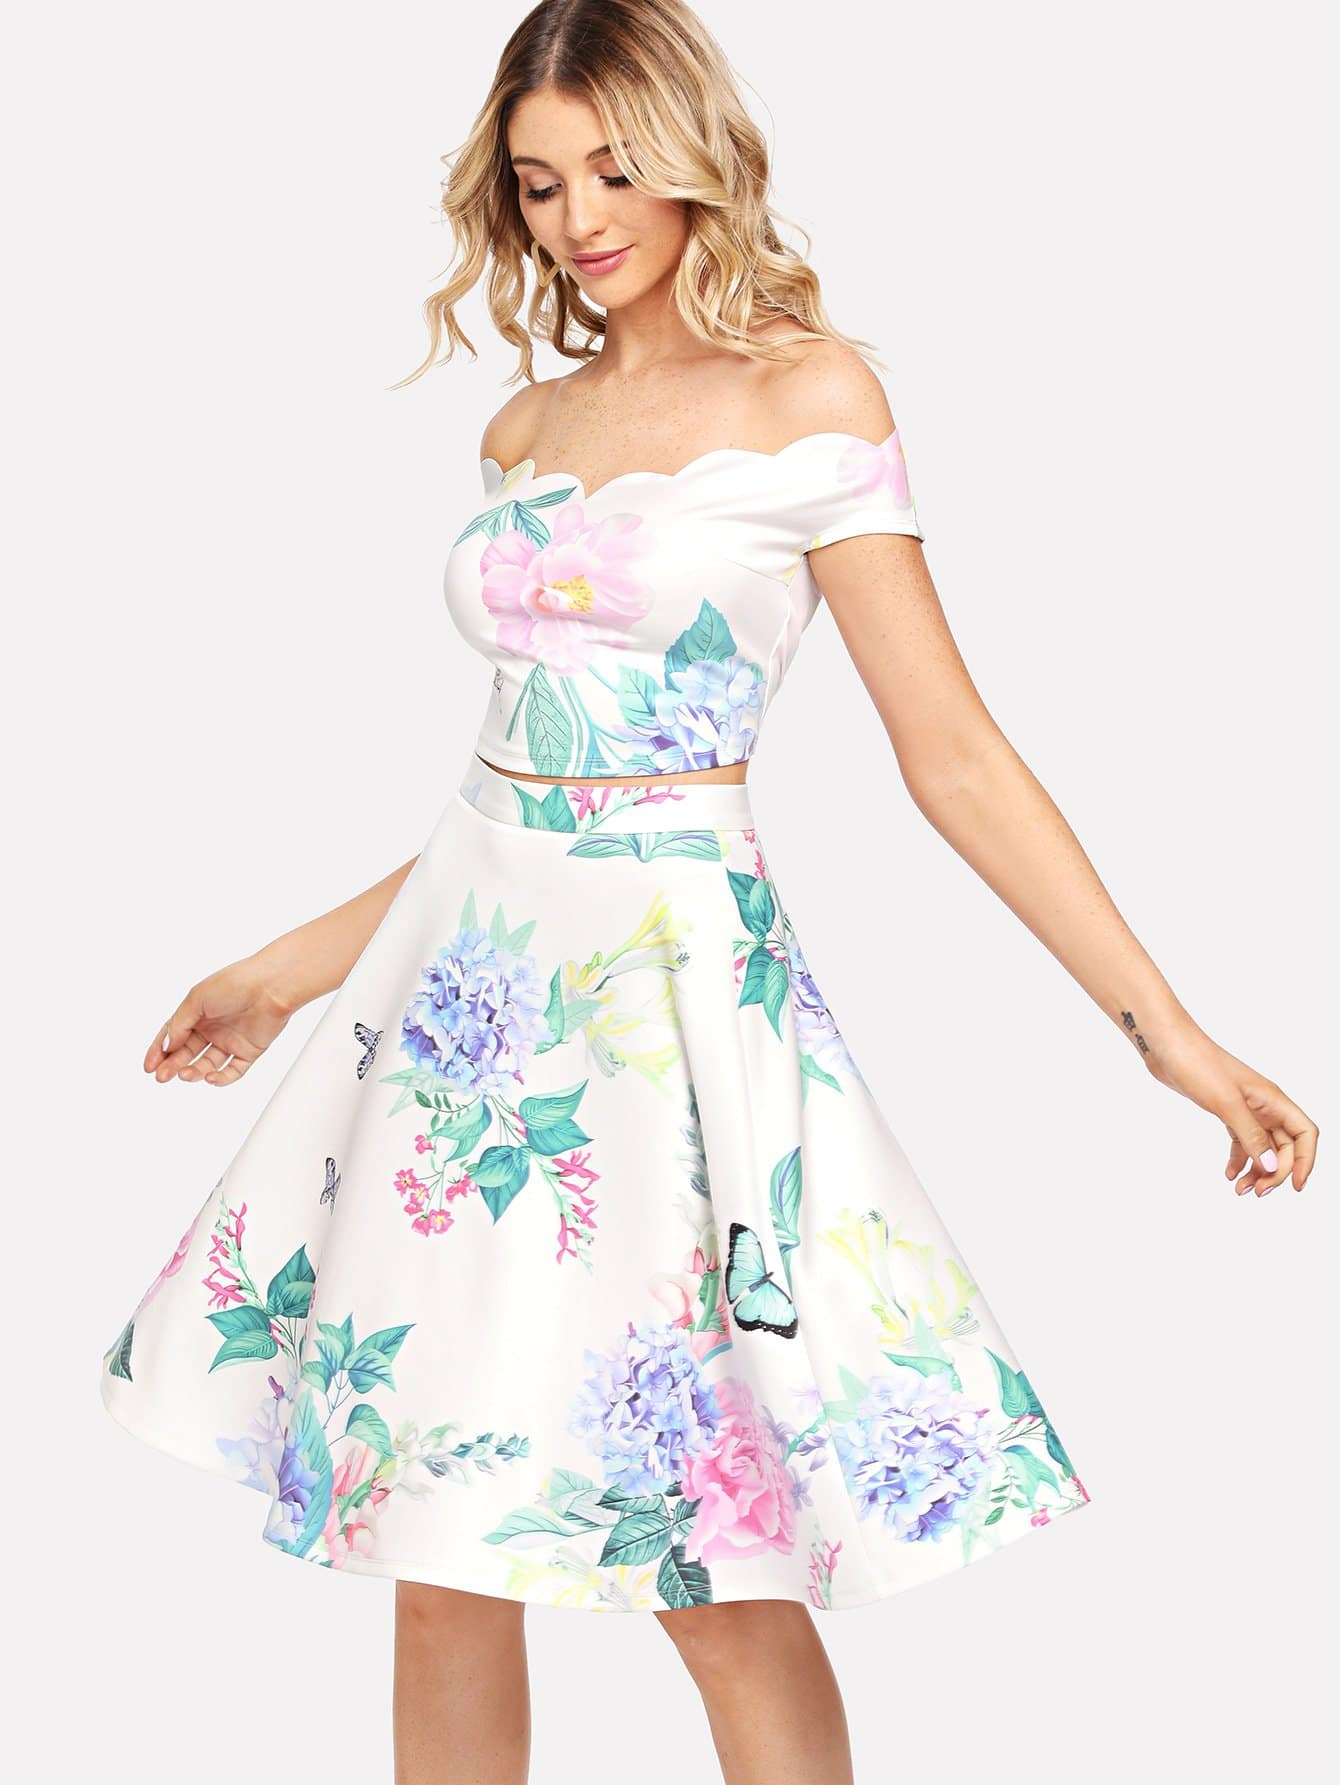 Scallop Neck Floral Bardot Top & Skirt Set dakota smith солнцезащитные очки dakota smith